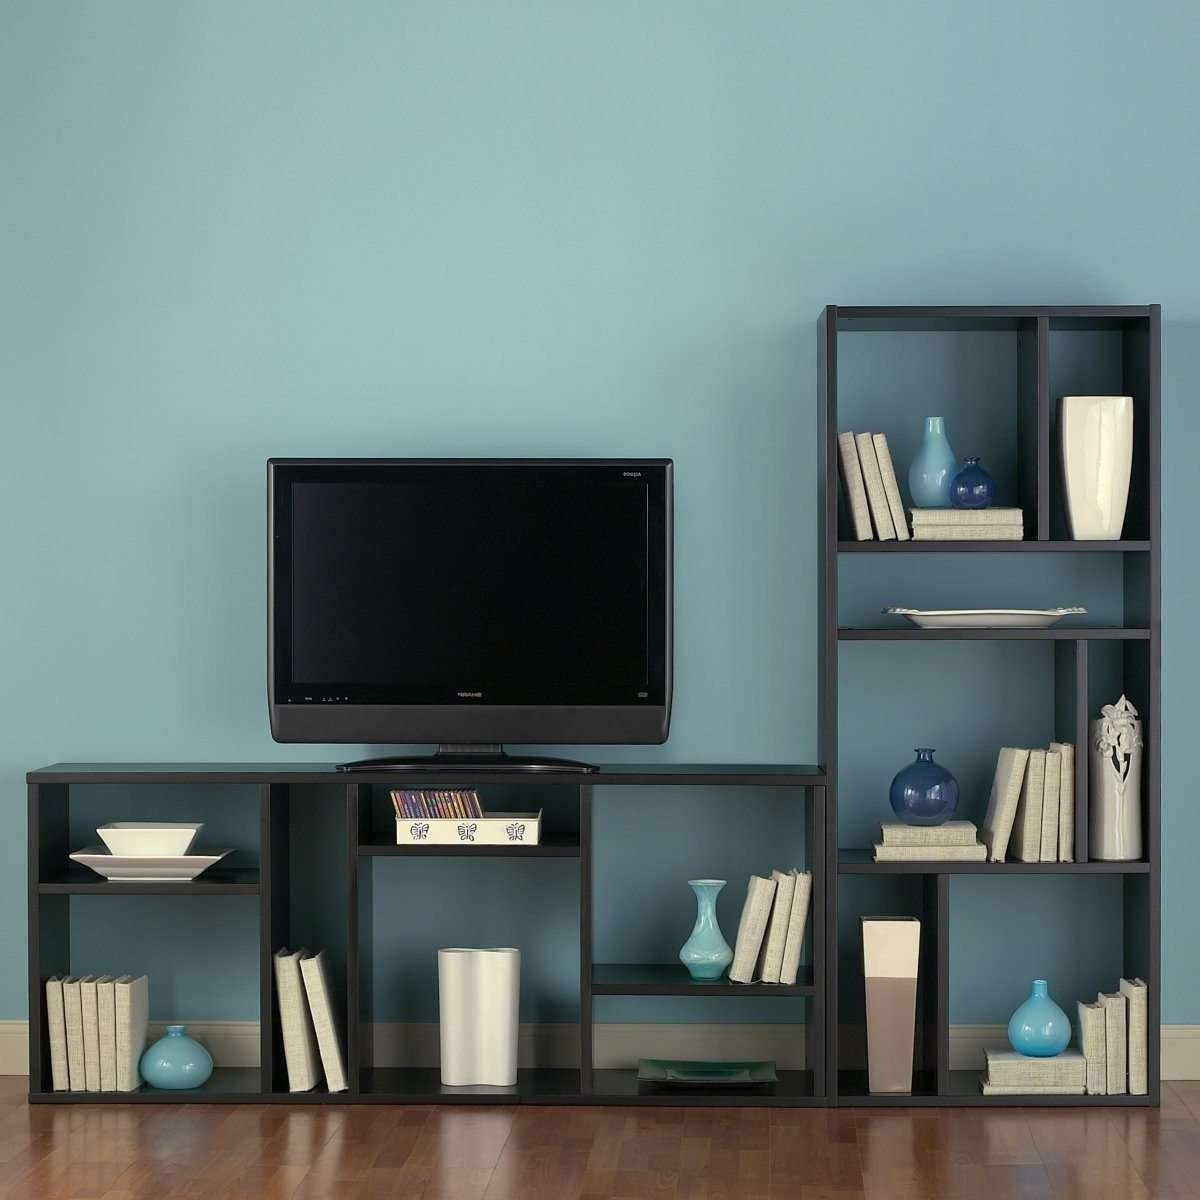 Great Tv Stand With Bookshelves 17 On Interior Designing Home With Regard To Tv Stands And Bookshelf (Gallery 2 of 15)